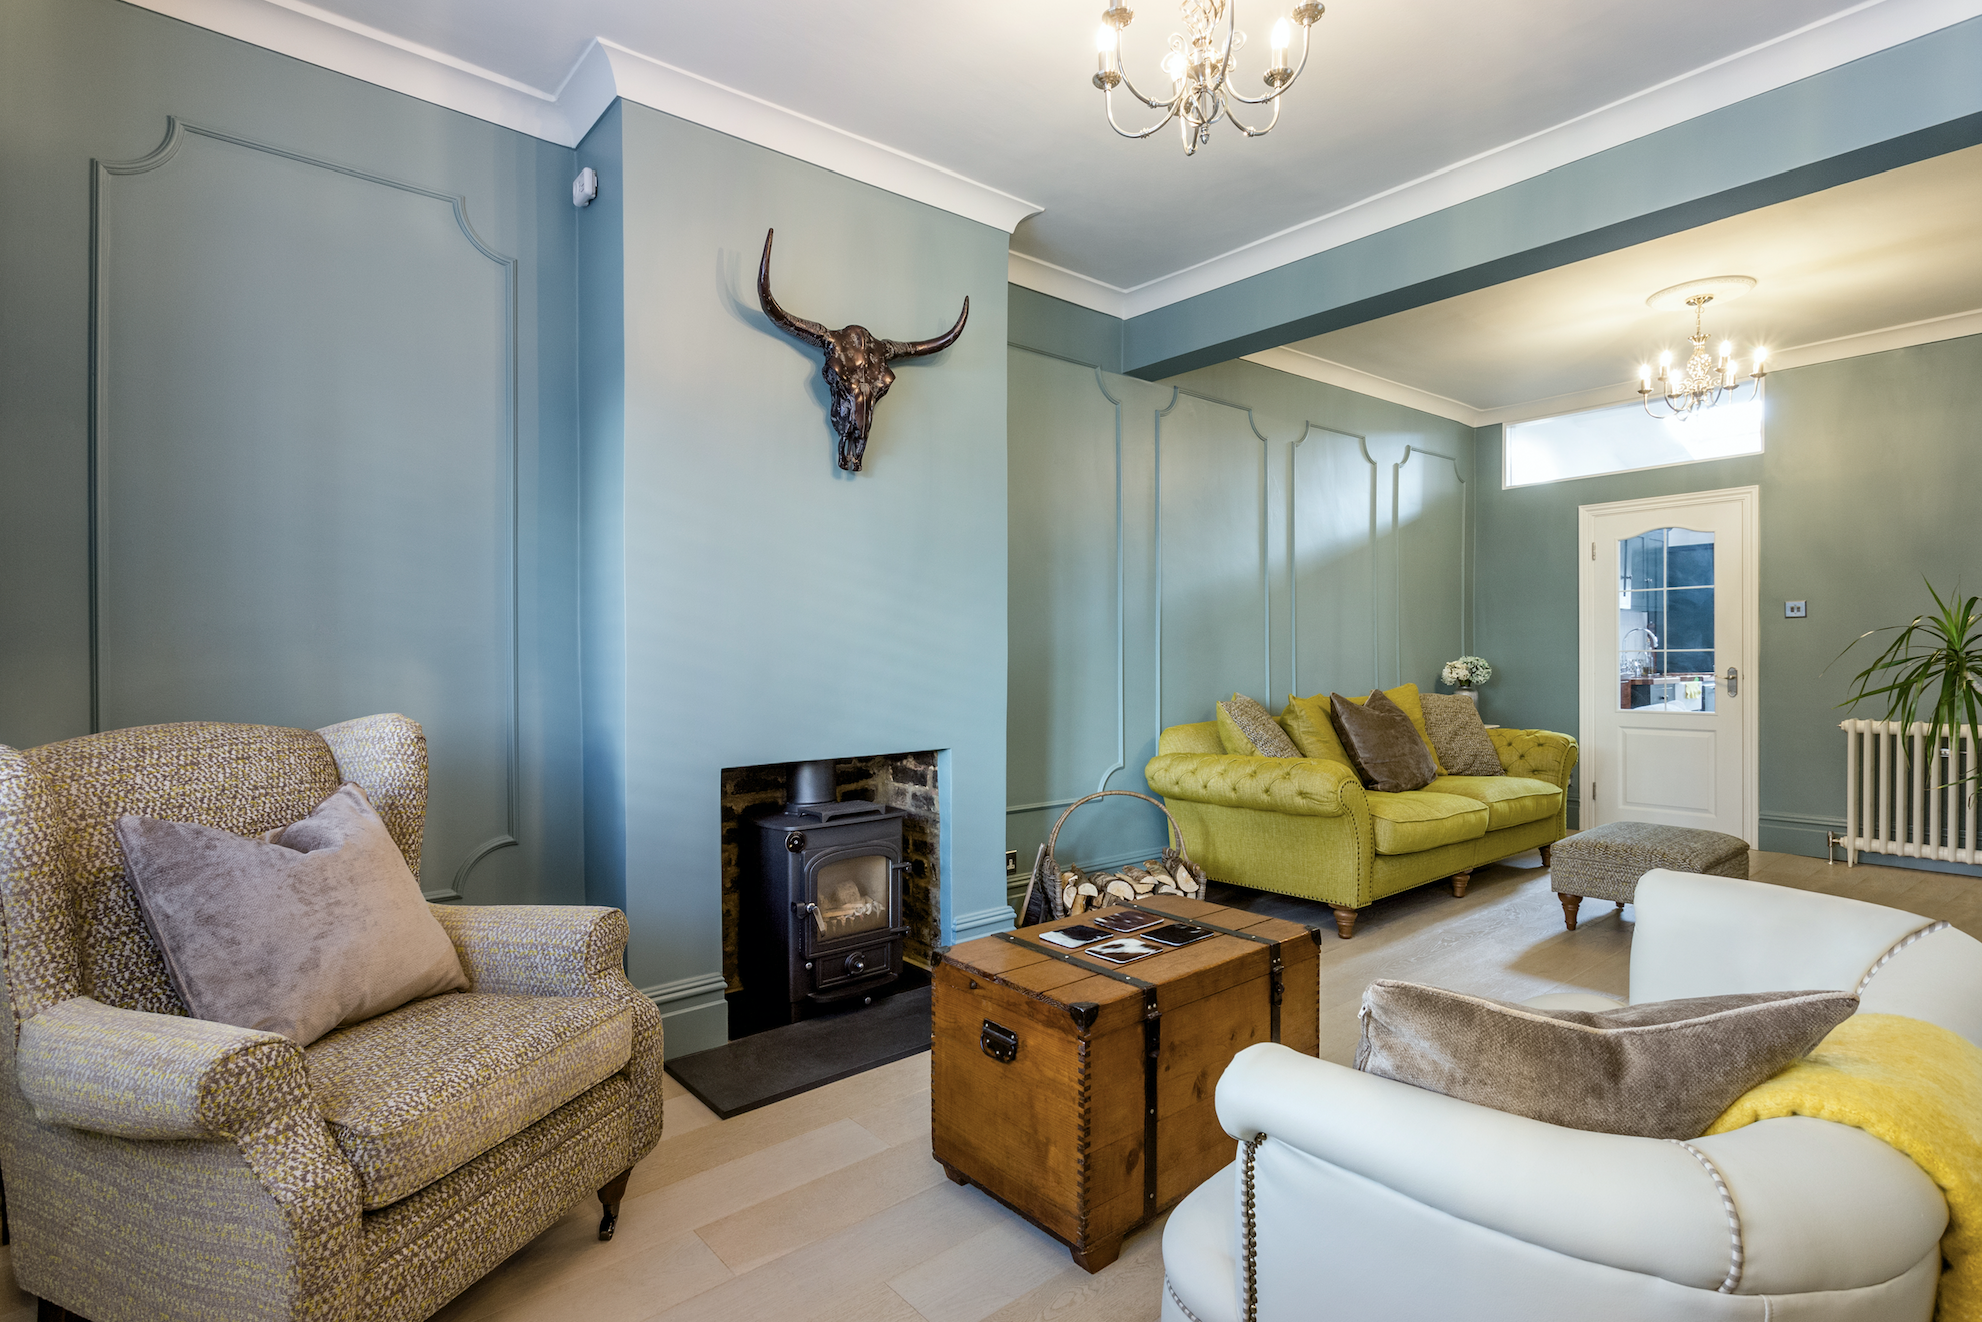 </p> <p>Find your ideal home design pro on designfor-me.com - get matched and see who's interested in your home project. Click image to see more inspiration from our design pros</p> <p>Design by Silvana, interior designer from Merton, London</p> <p> #interiordesign #interiors #homedecor #homeinspiration #livingrooms #livingroomdesign #livingroominspiration #livingroomideas </p> <p>